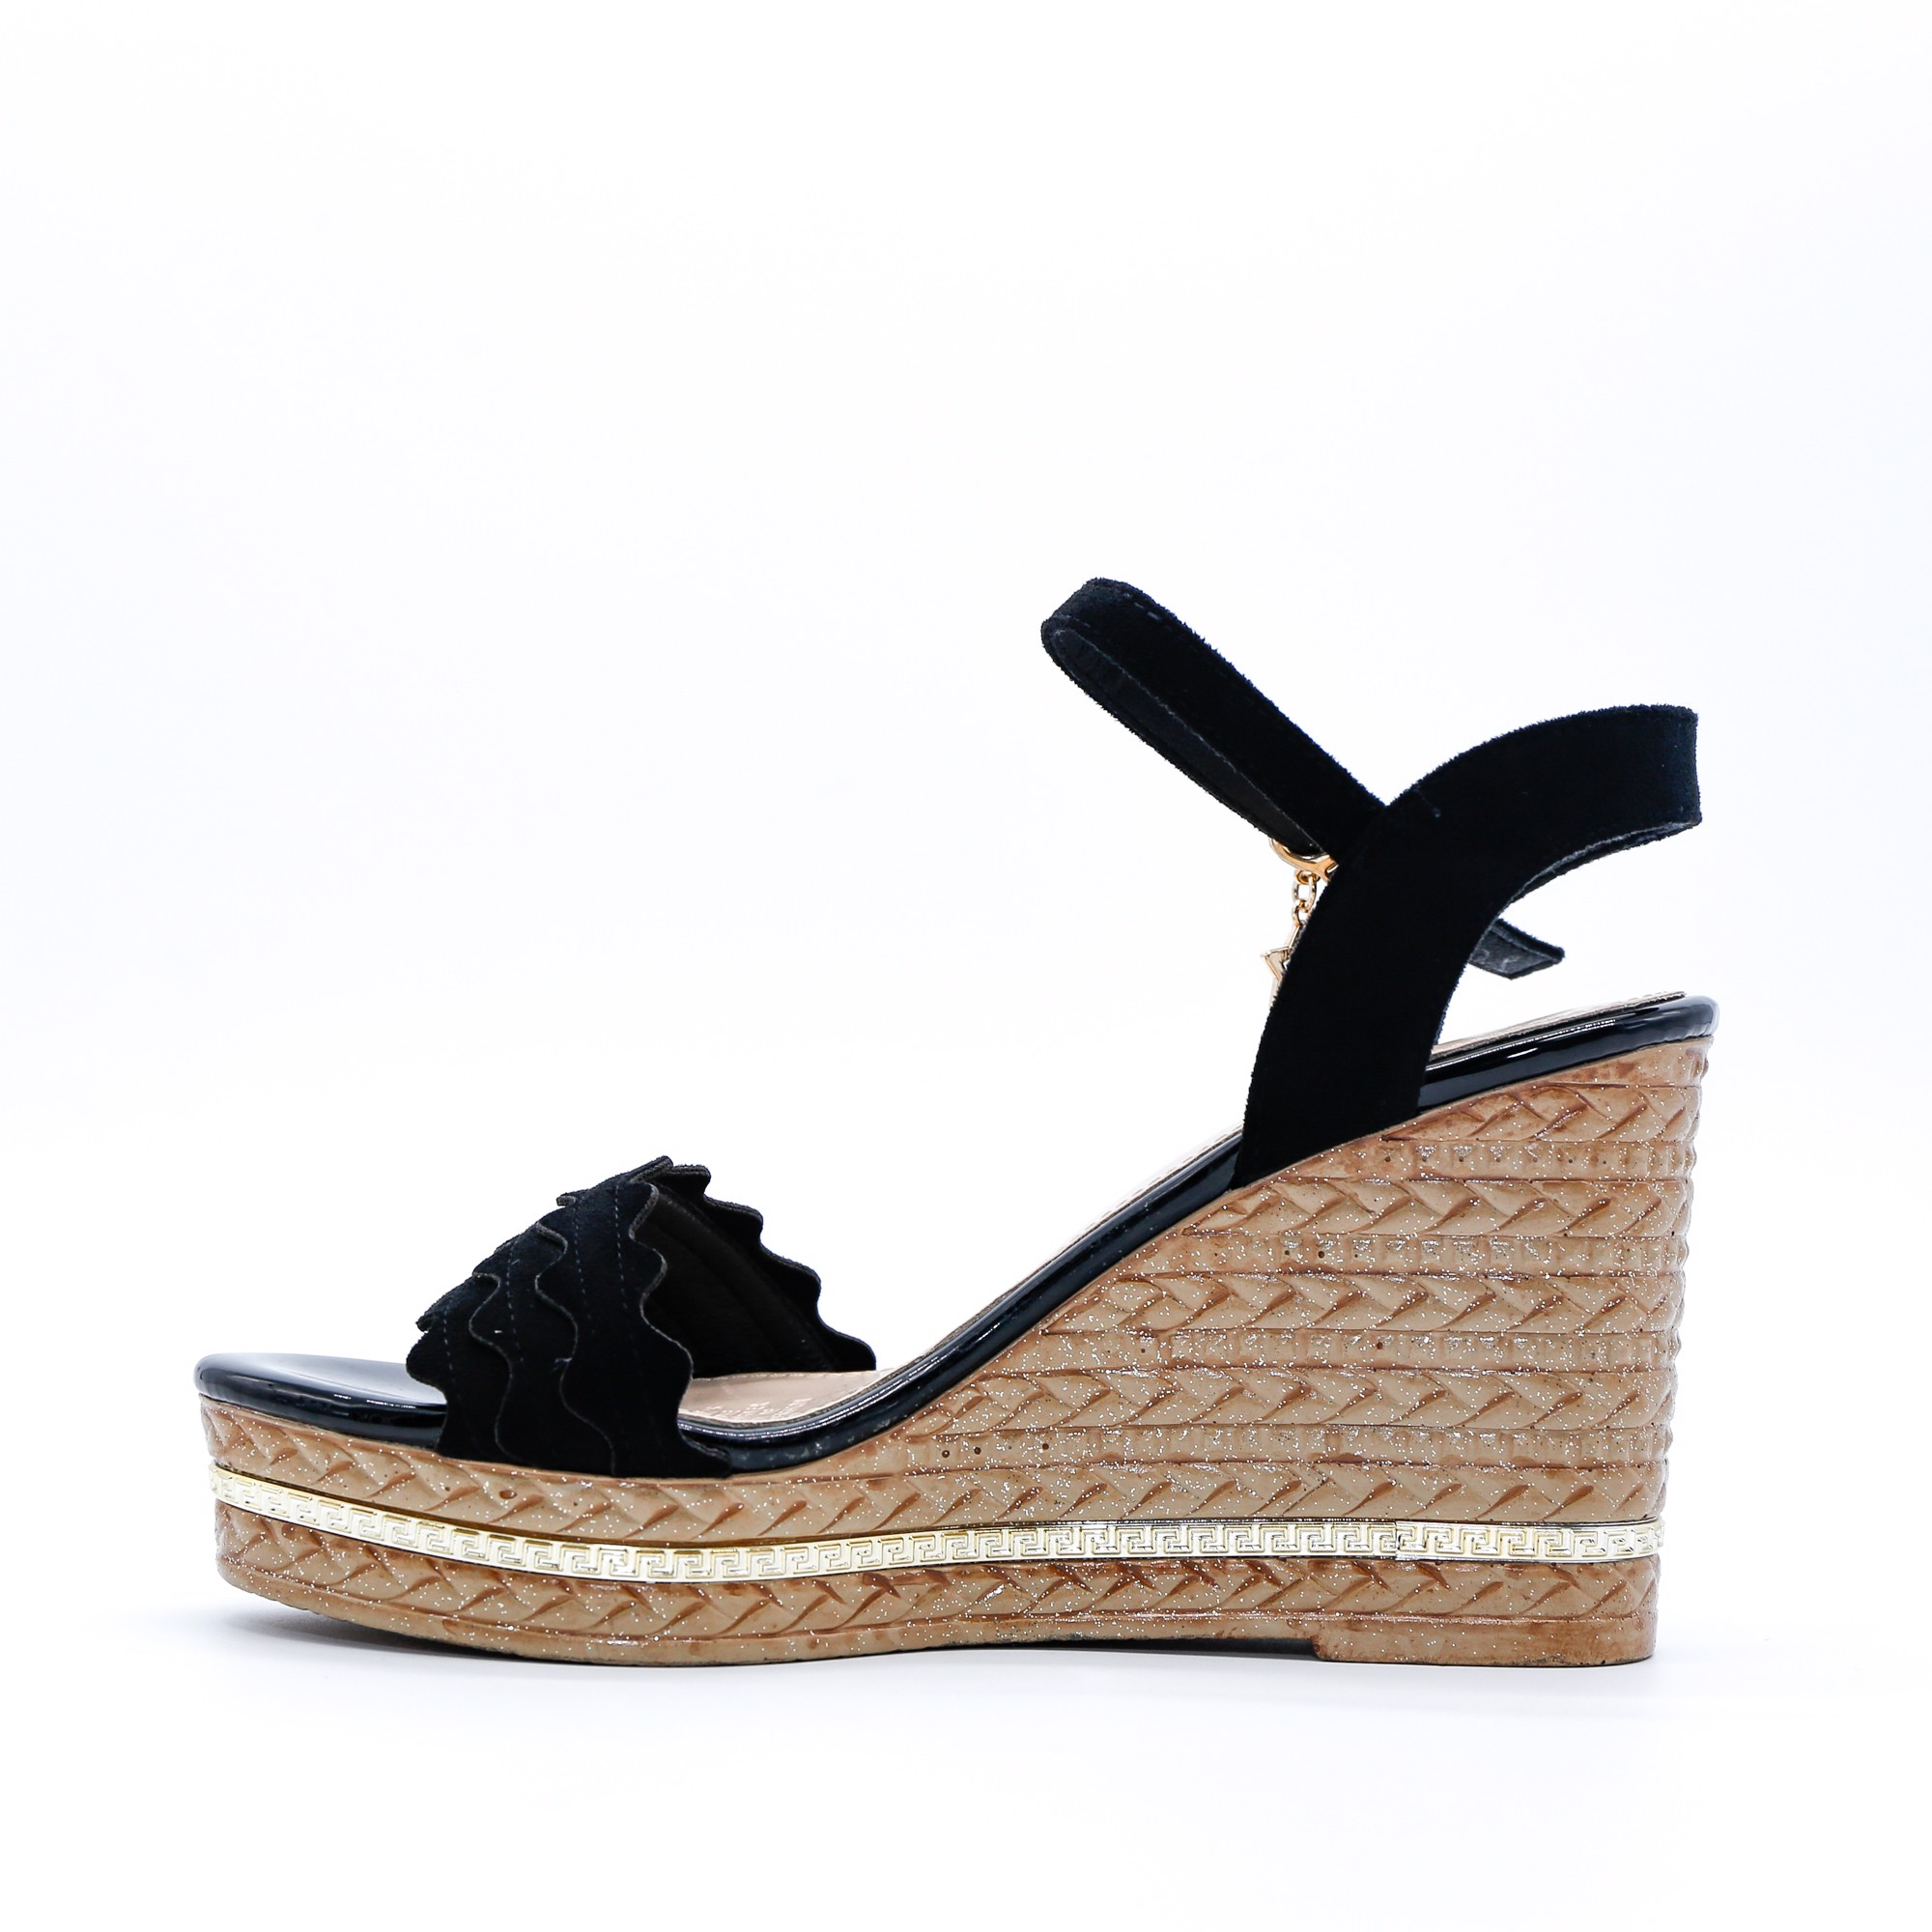 Sandals nữ Exull Mode 1816400460